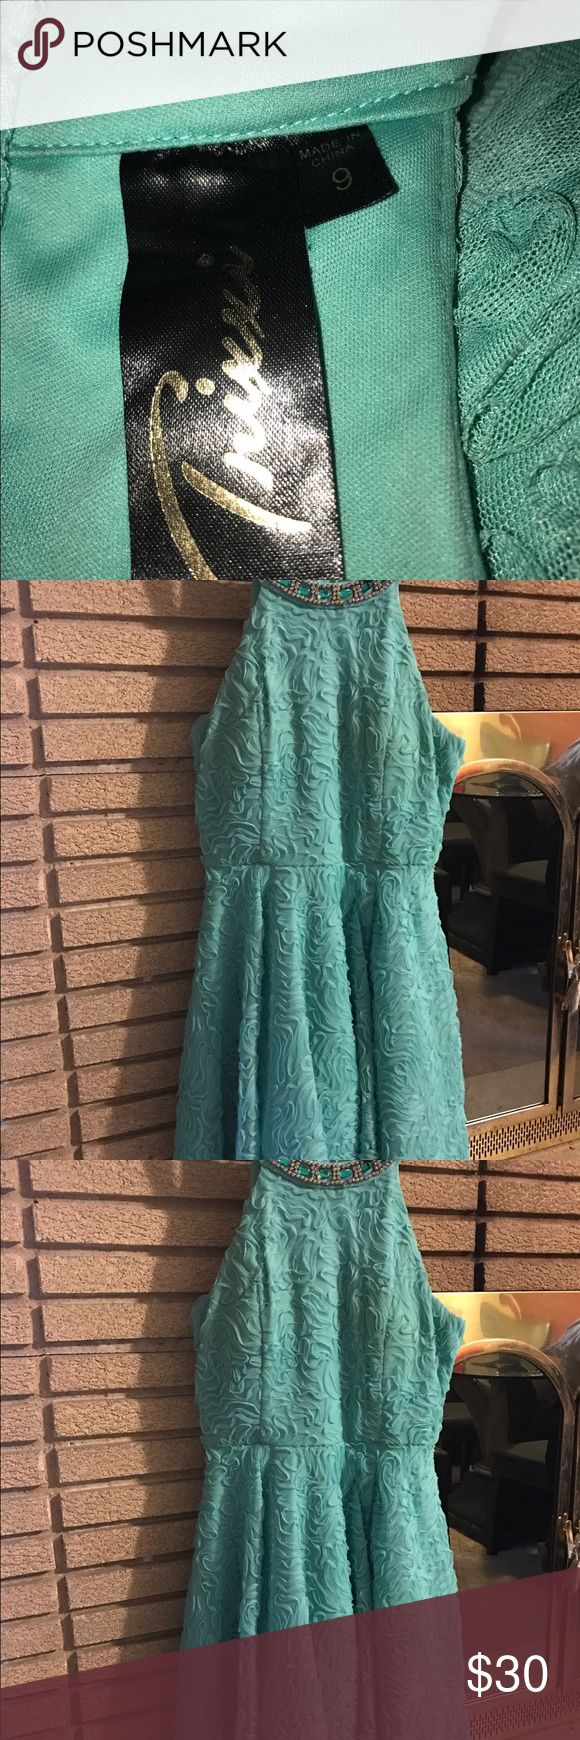 Dress Pastel green dress, worn once great for a wedding,party, or night out Dresses Midi